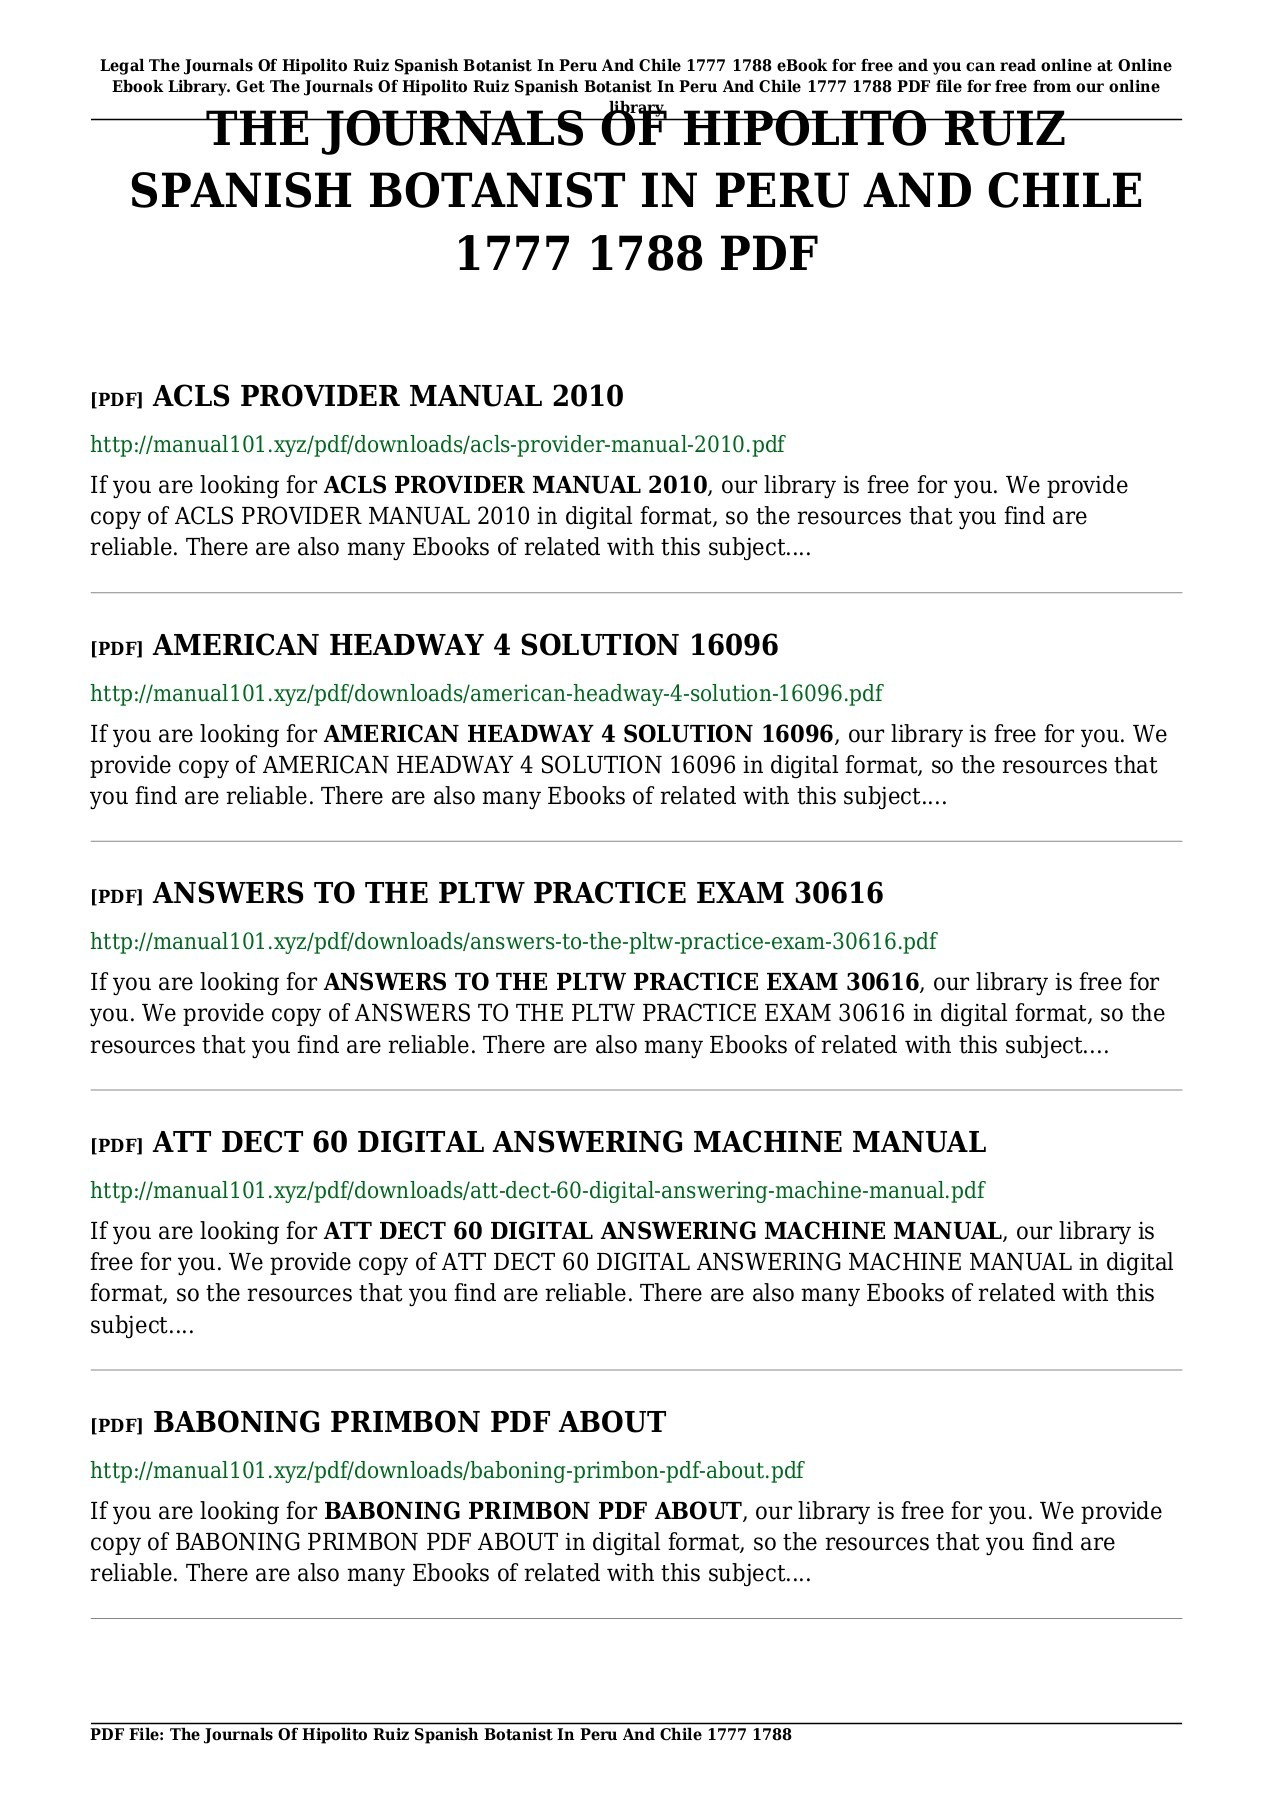 Acls manuals ebook manual array macguard array best free fillable forms acls questions and answers pdf free rh lifechallengingrides us fandeluxe Images